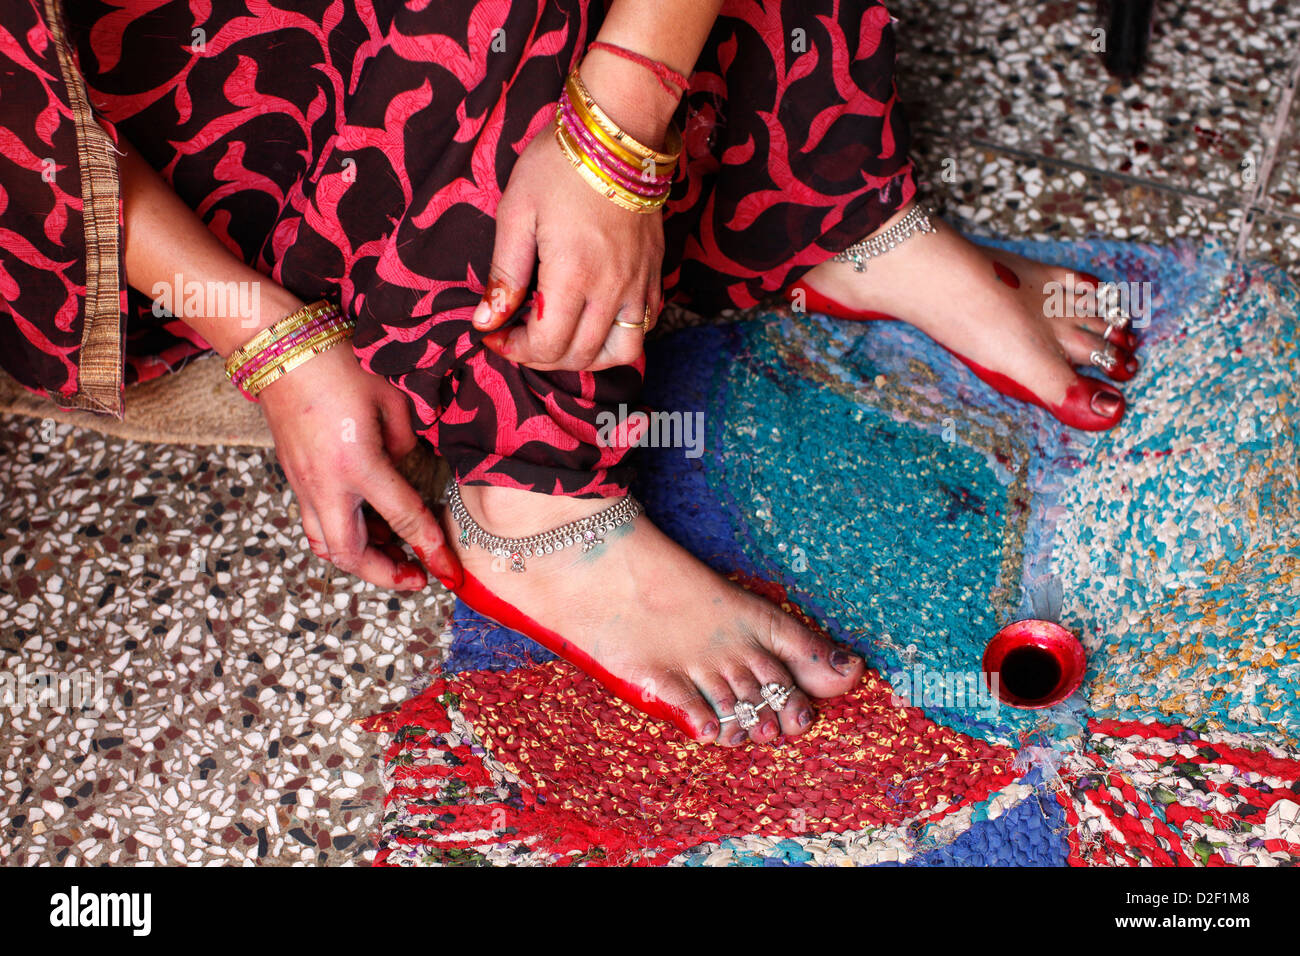 Woman applying red dye on her soles Goverdan. India. - Stock Image